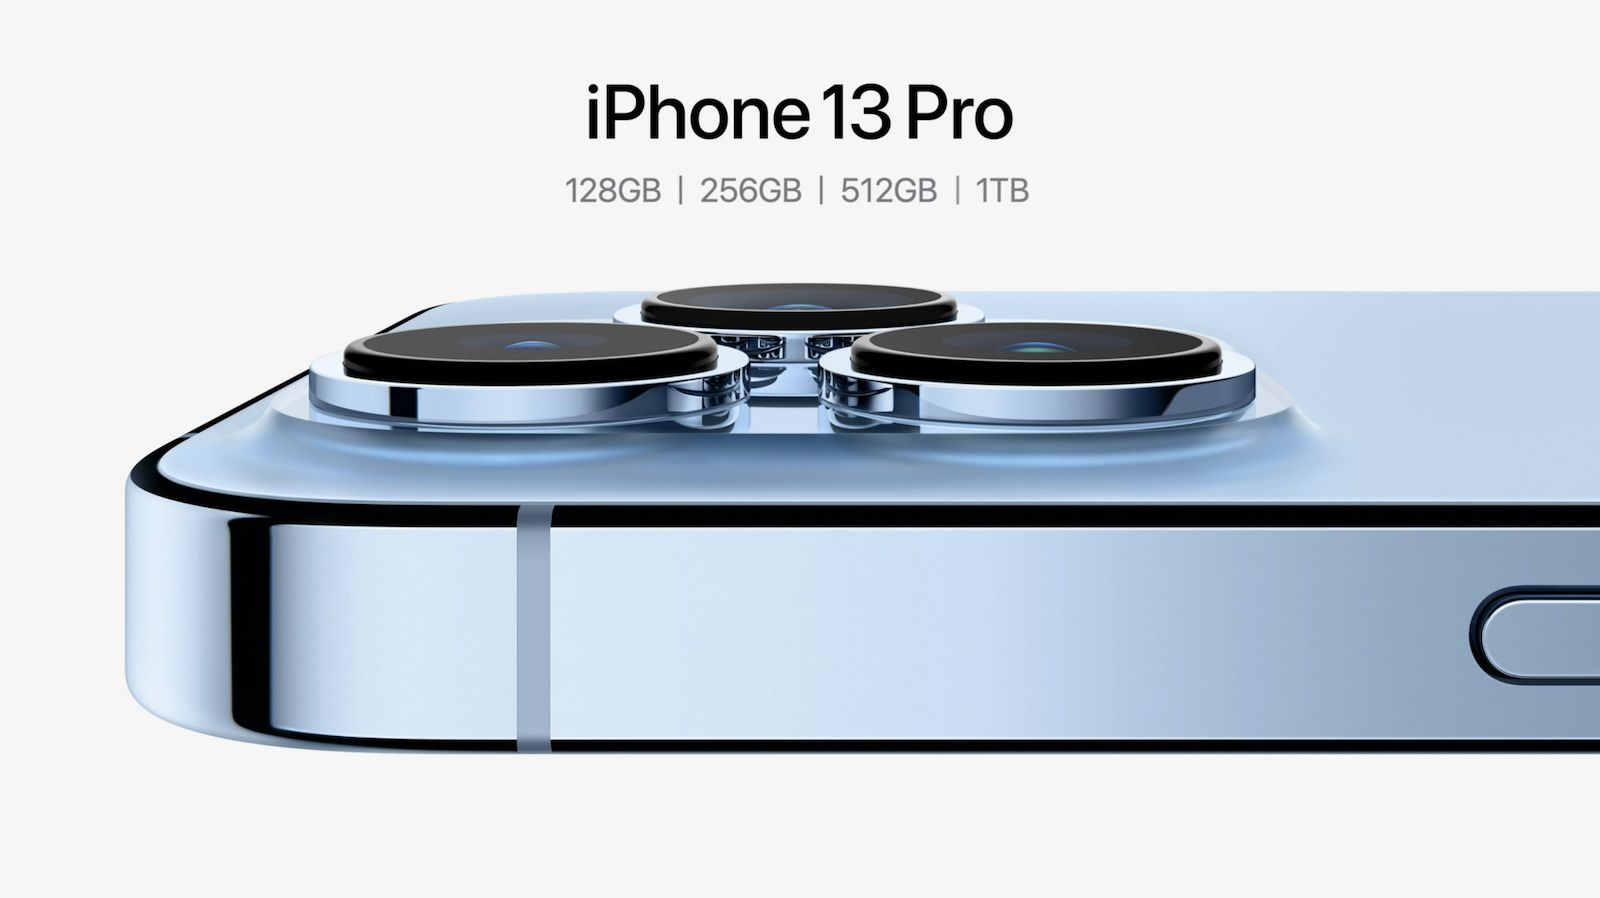 iPhone 13 Pro Available With Up to 1TB of Storage, Pricing Tops Out at  Record $1,599 - MacRumors